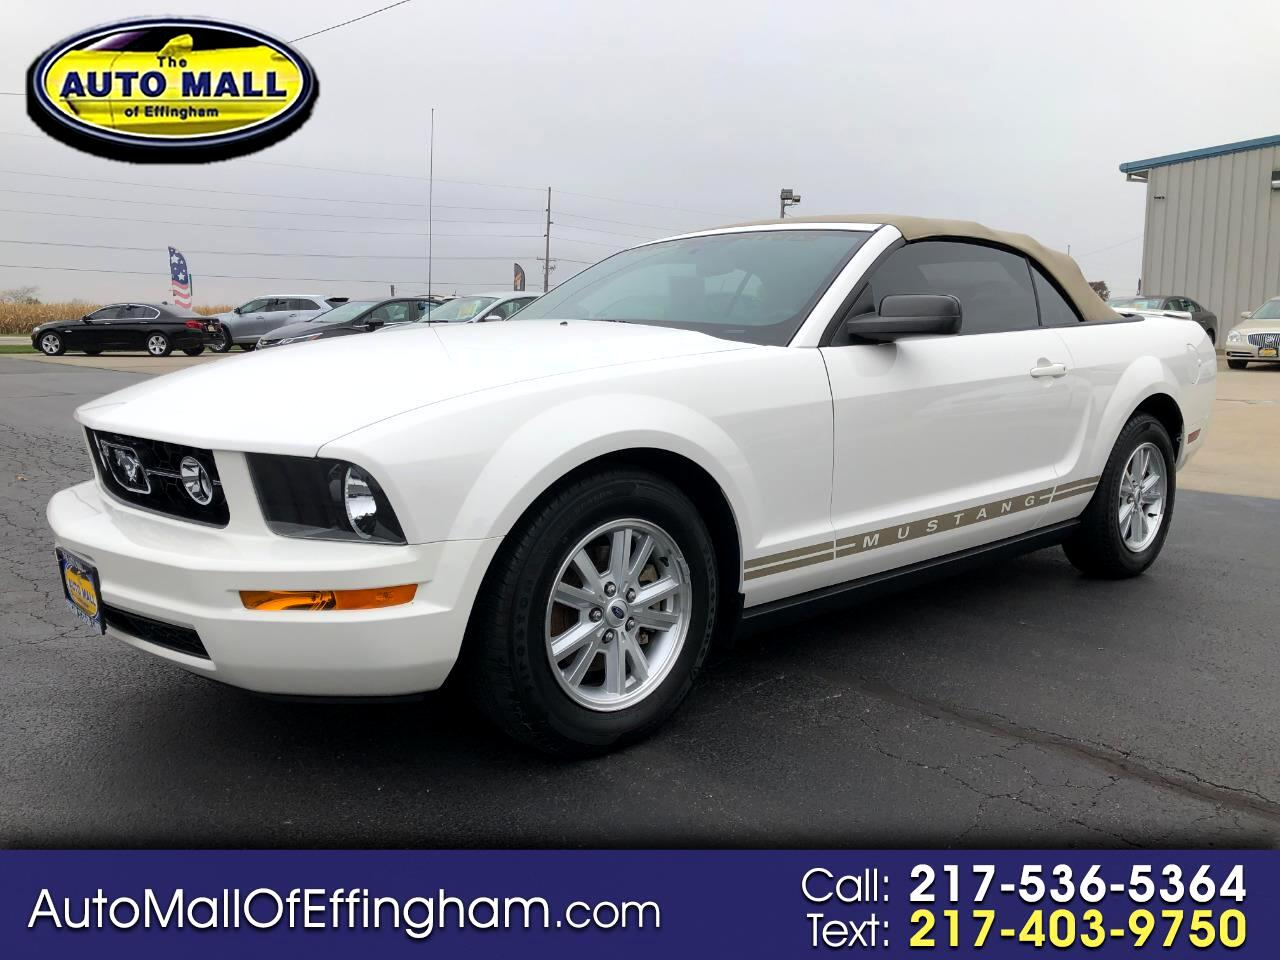 Ford Mustang 2dr Conv Premium 2008